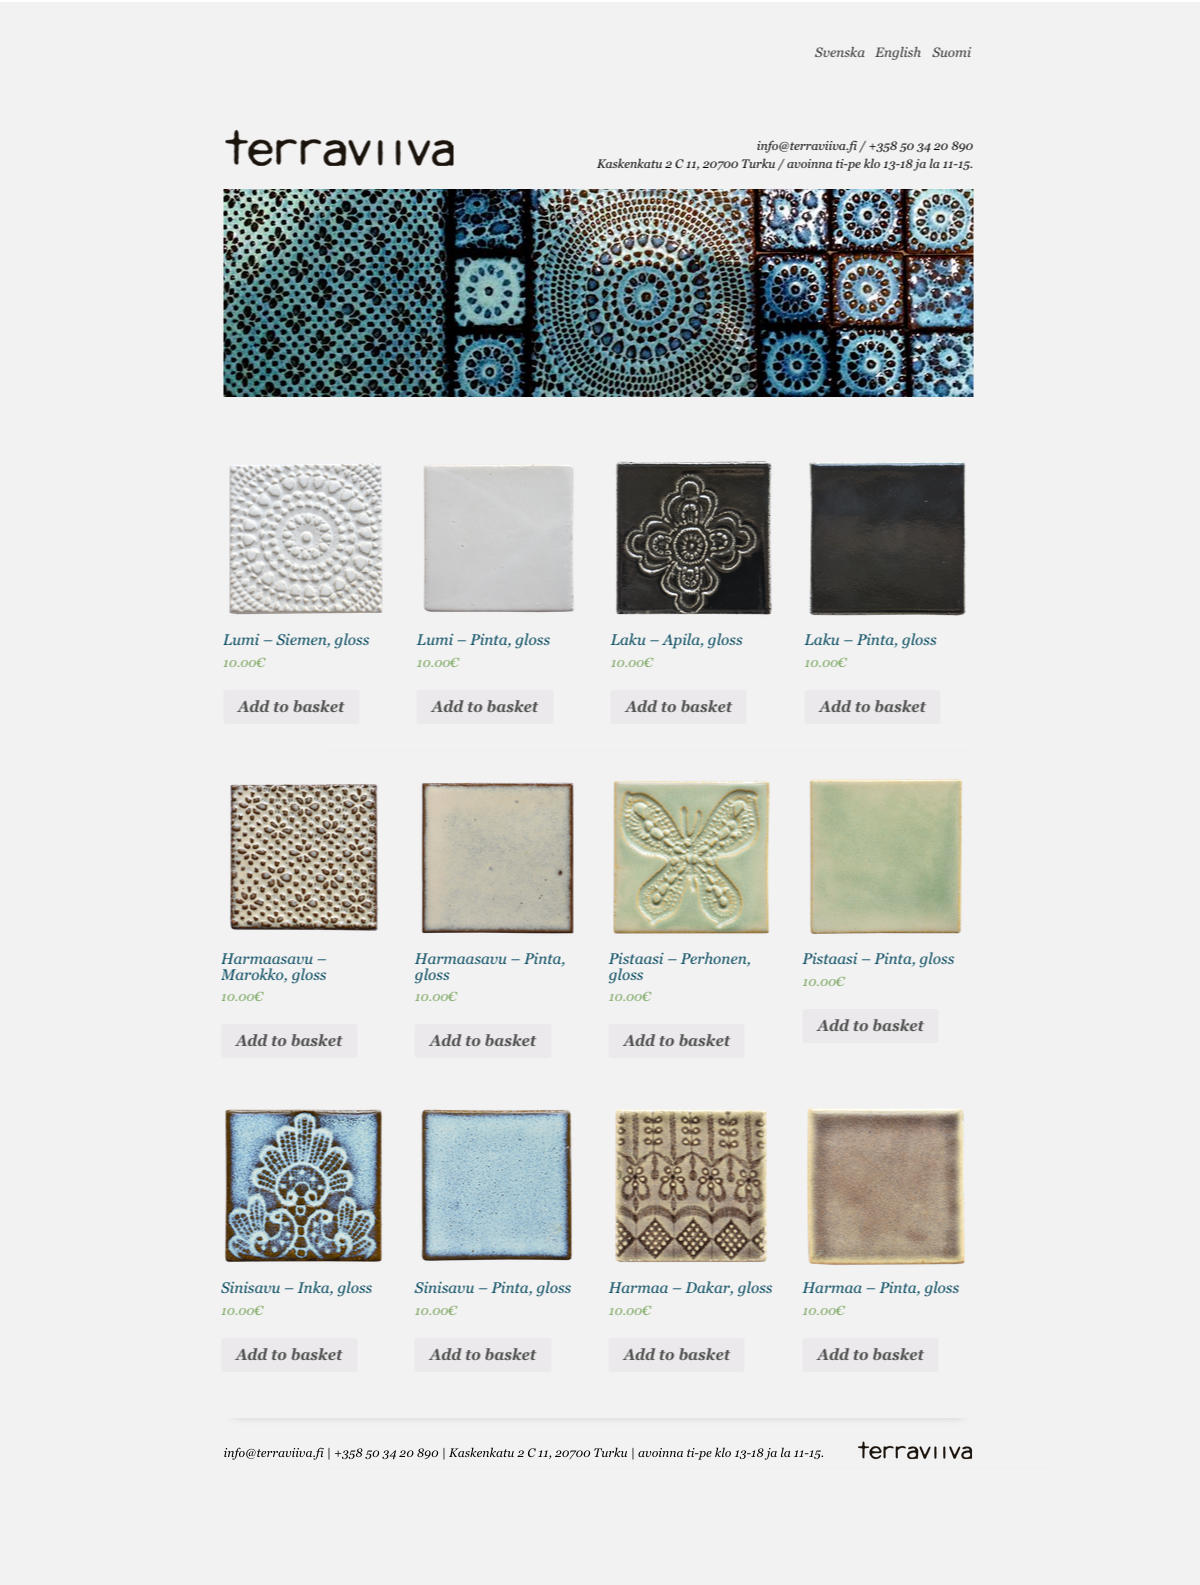 Webshop layout design and coding for Terraviiva. They make beautiful handcrafted ceramic tiles with ornaments in rich variety of colors and now sell them all over the world. Ceramics by Minna Komulainen. Made by Olli Karvonen